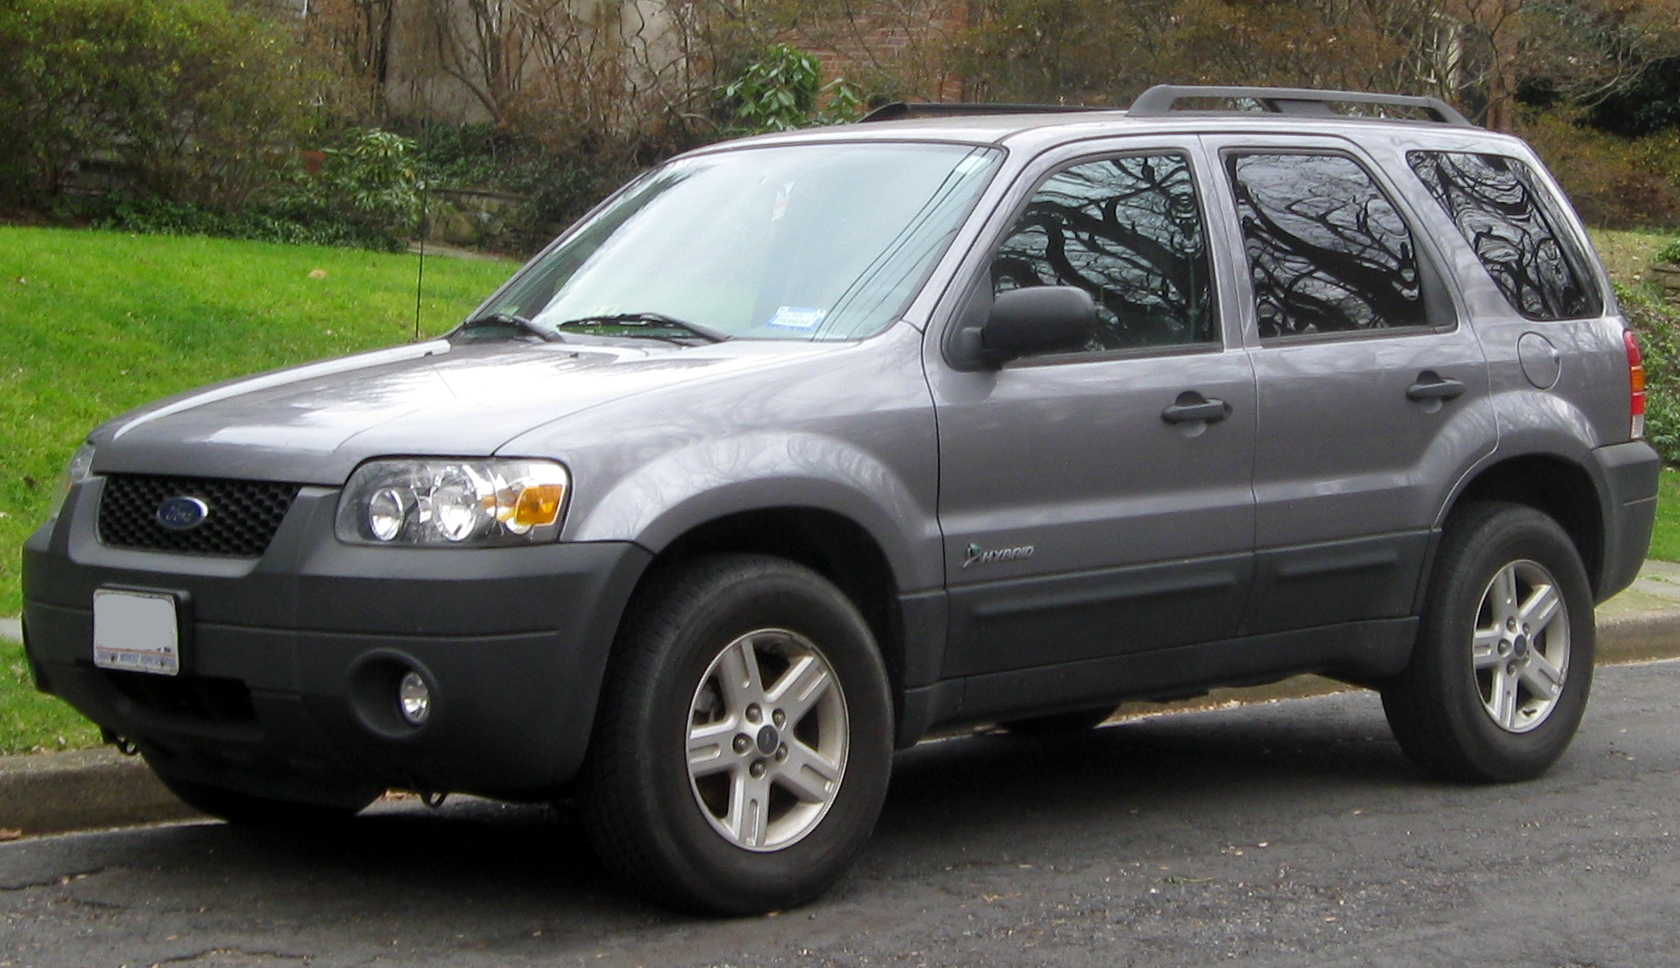 2007 ford escape image 13